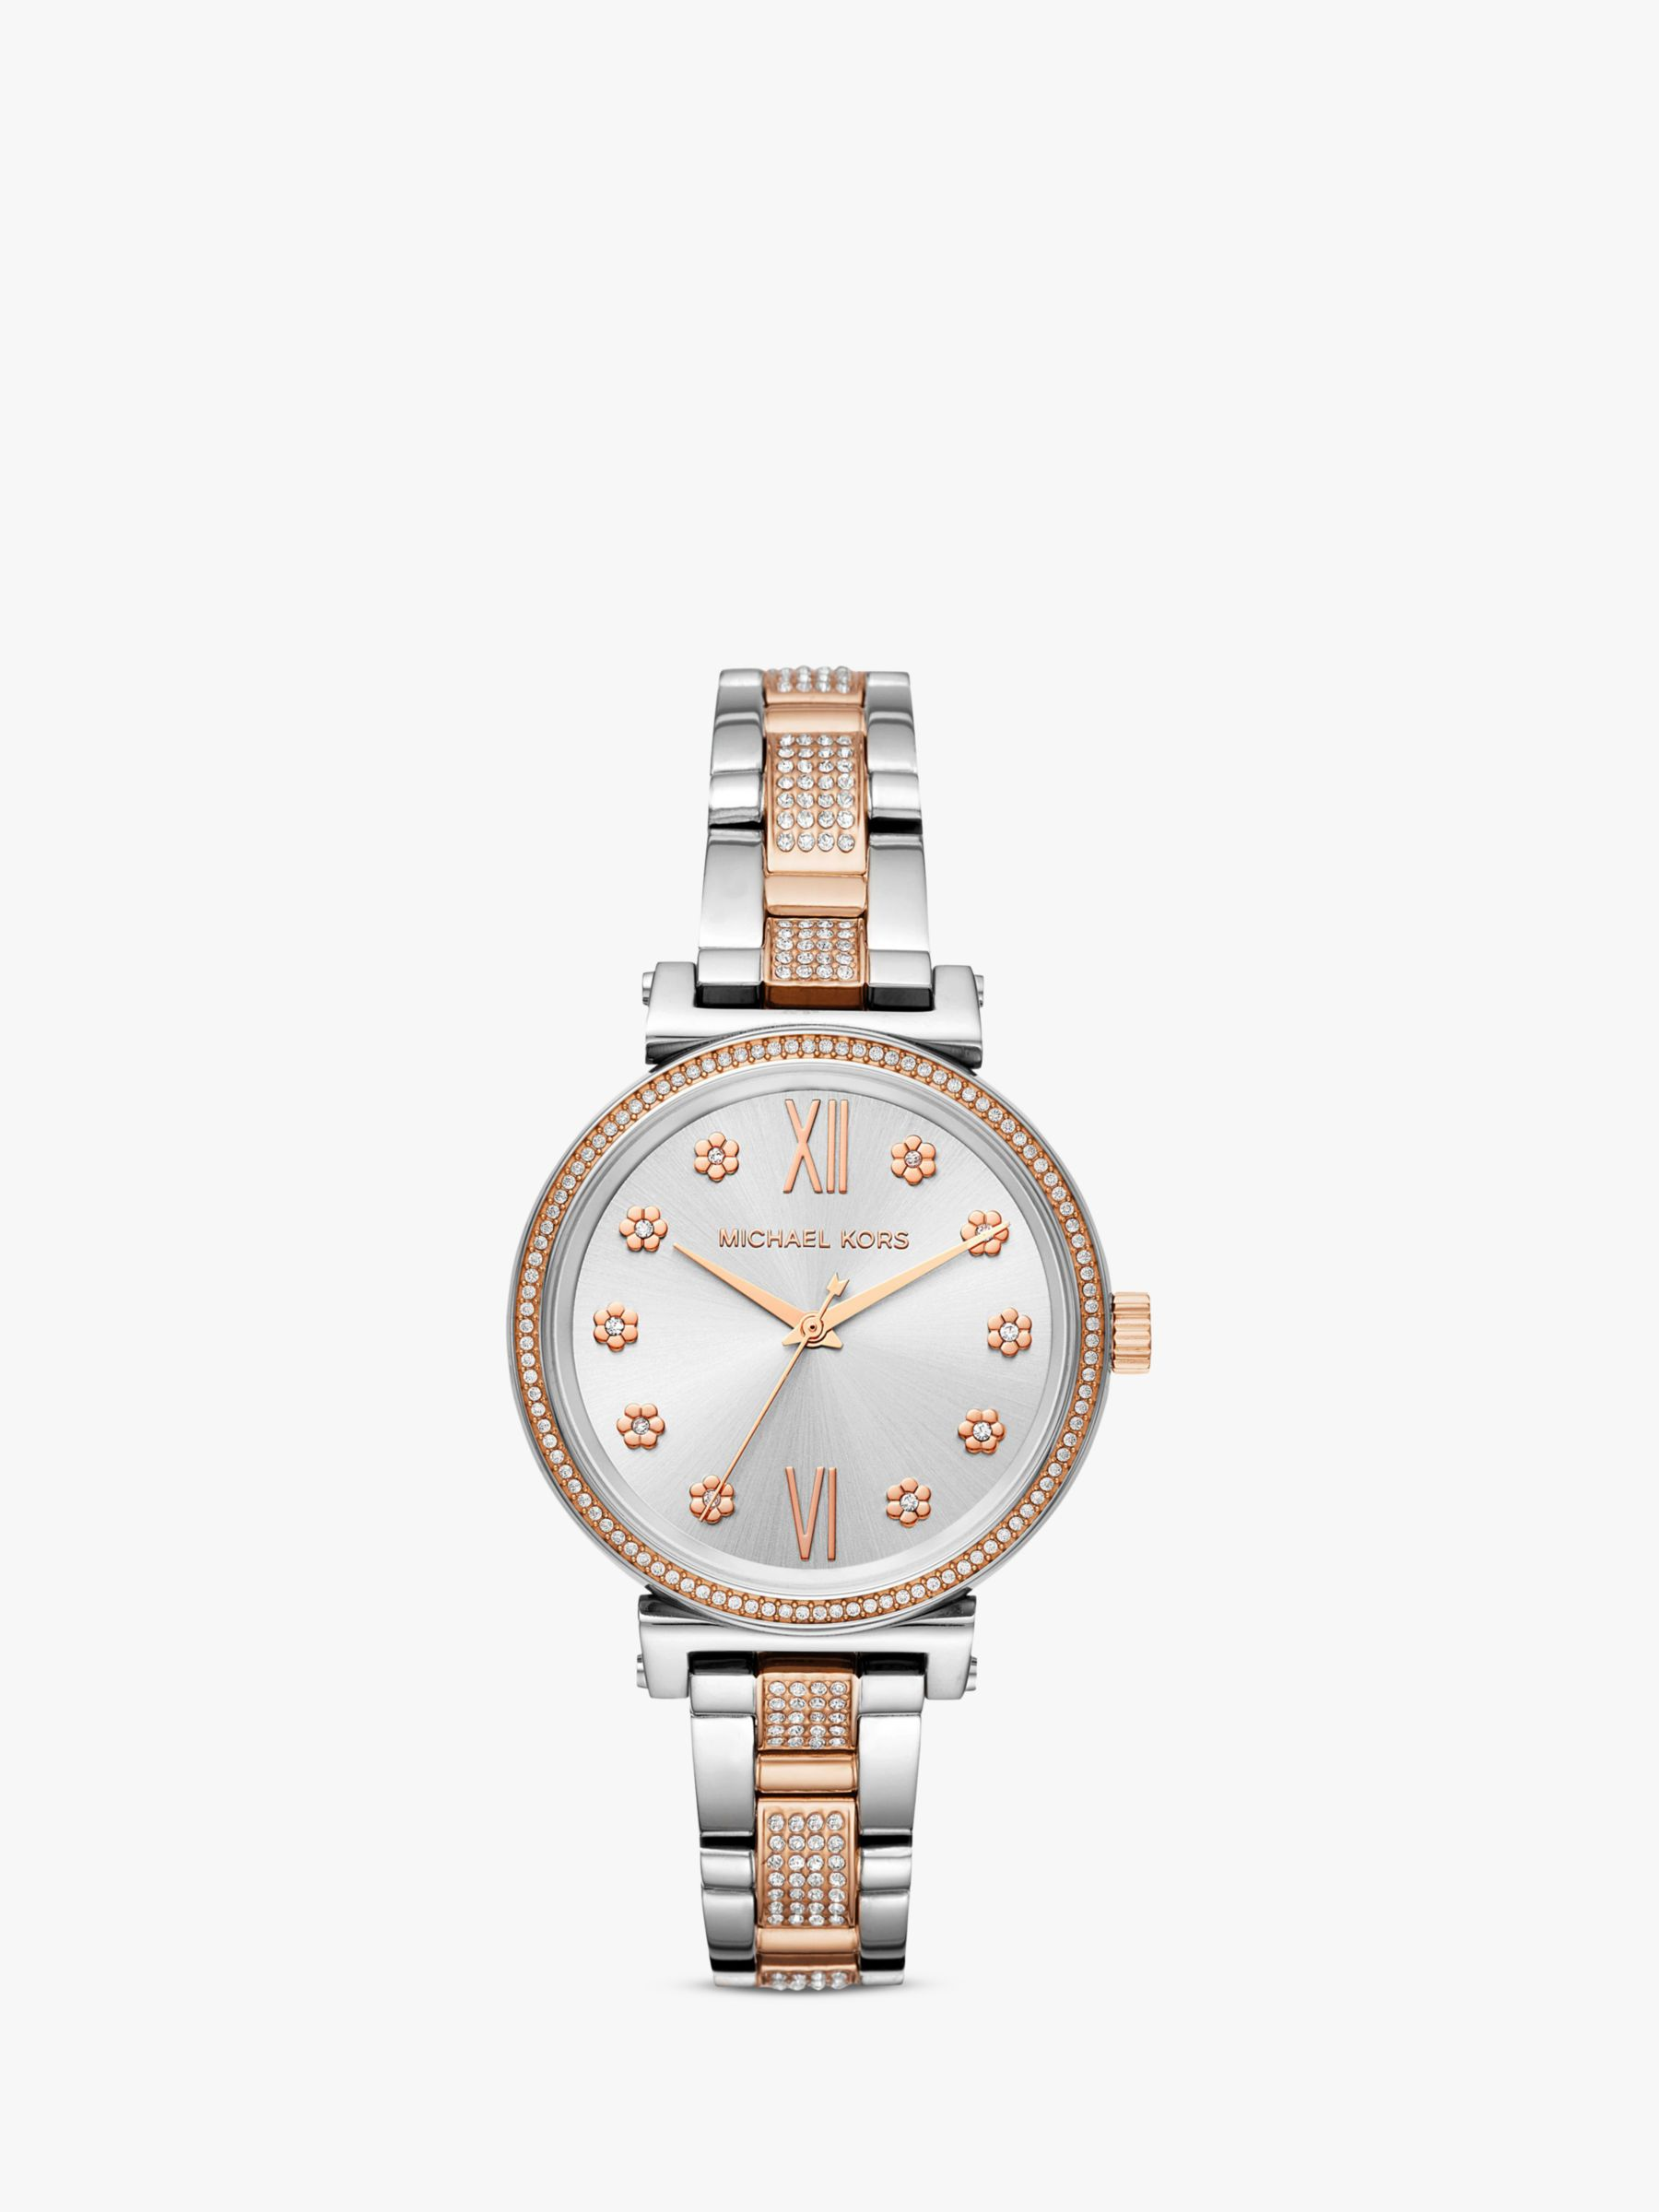 b71919c6d26a3 Michael Kors Women s Sofie Crystal Flower Index Bracelet Strap Watch at  John Lewis   Partners